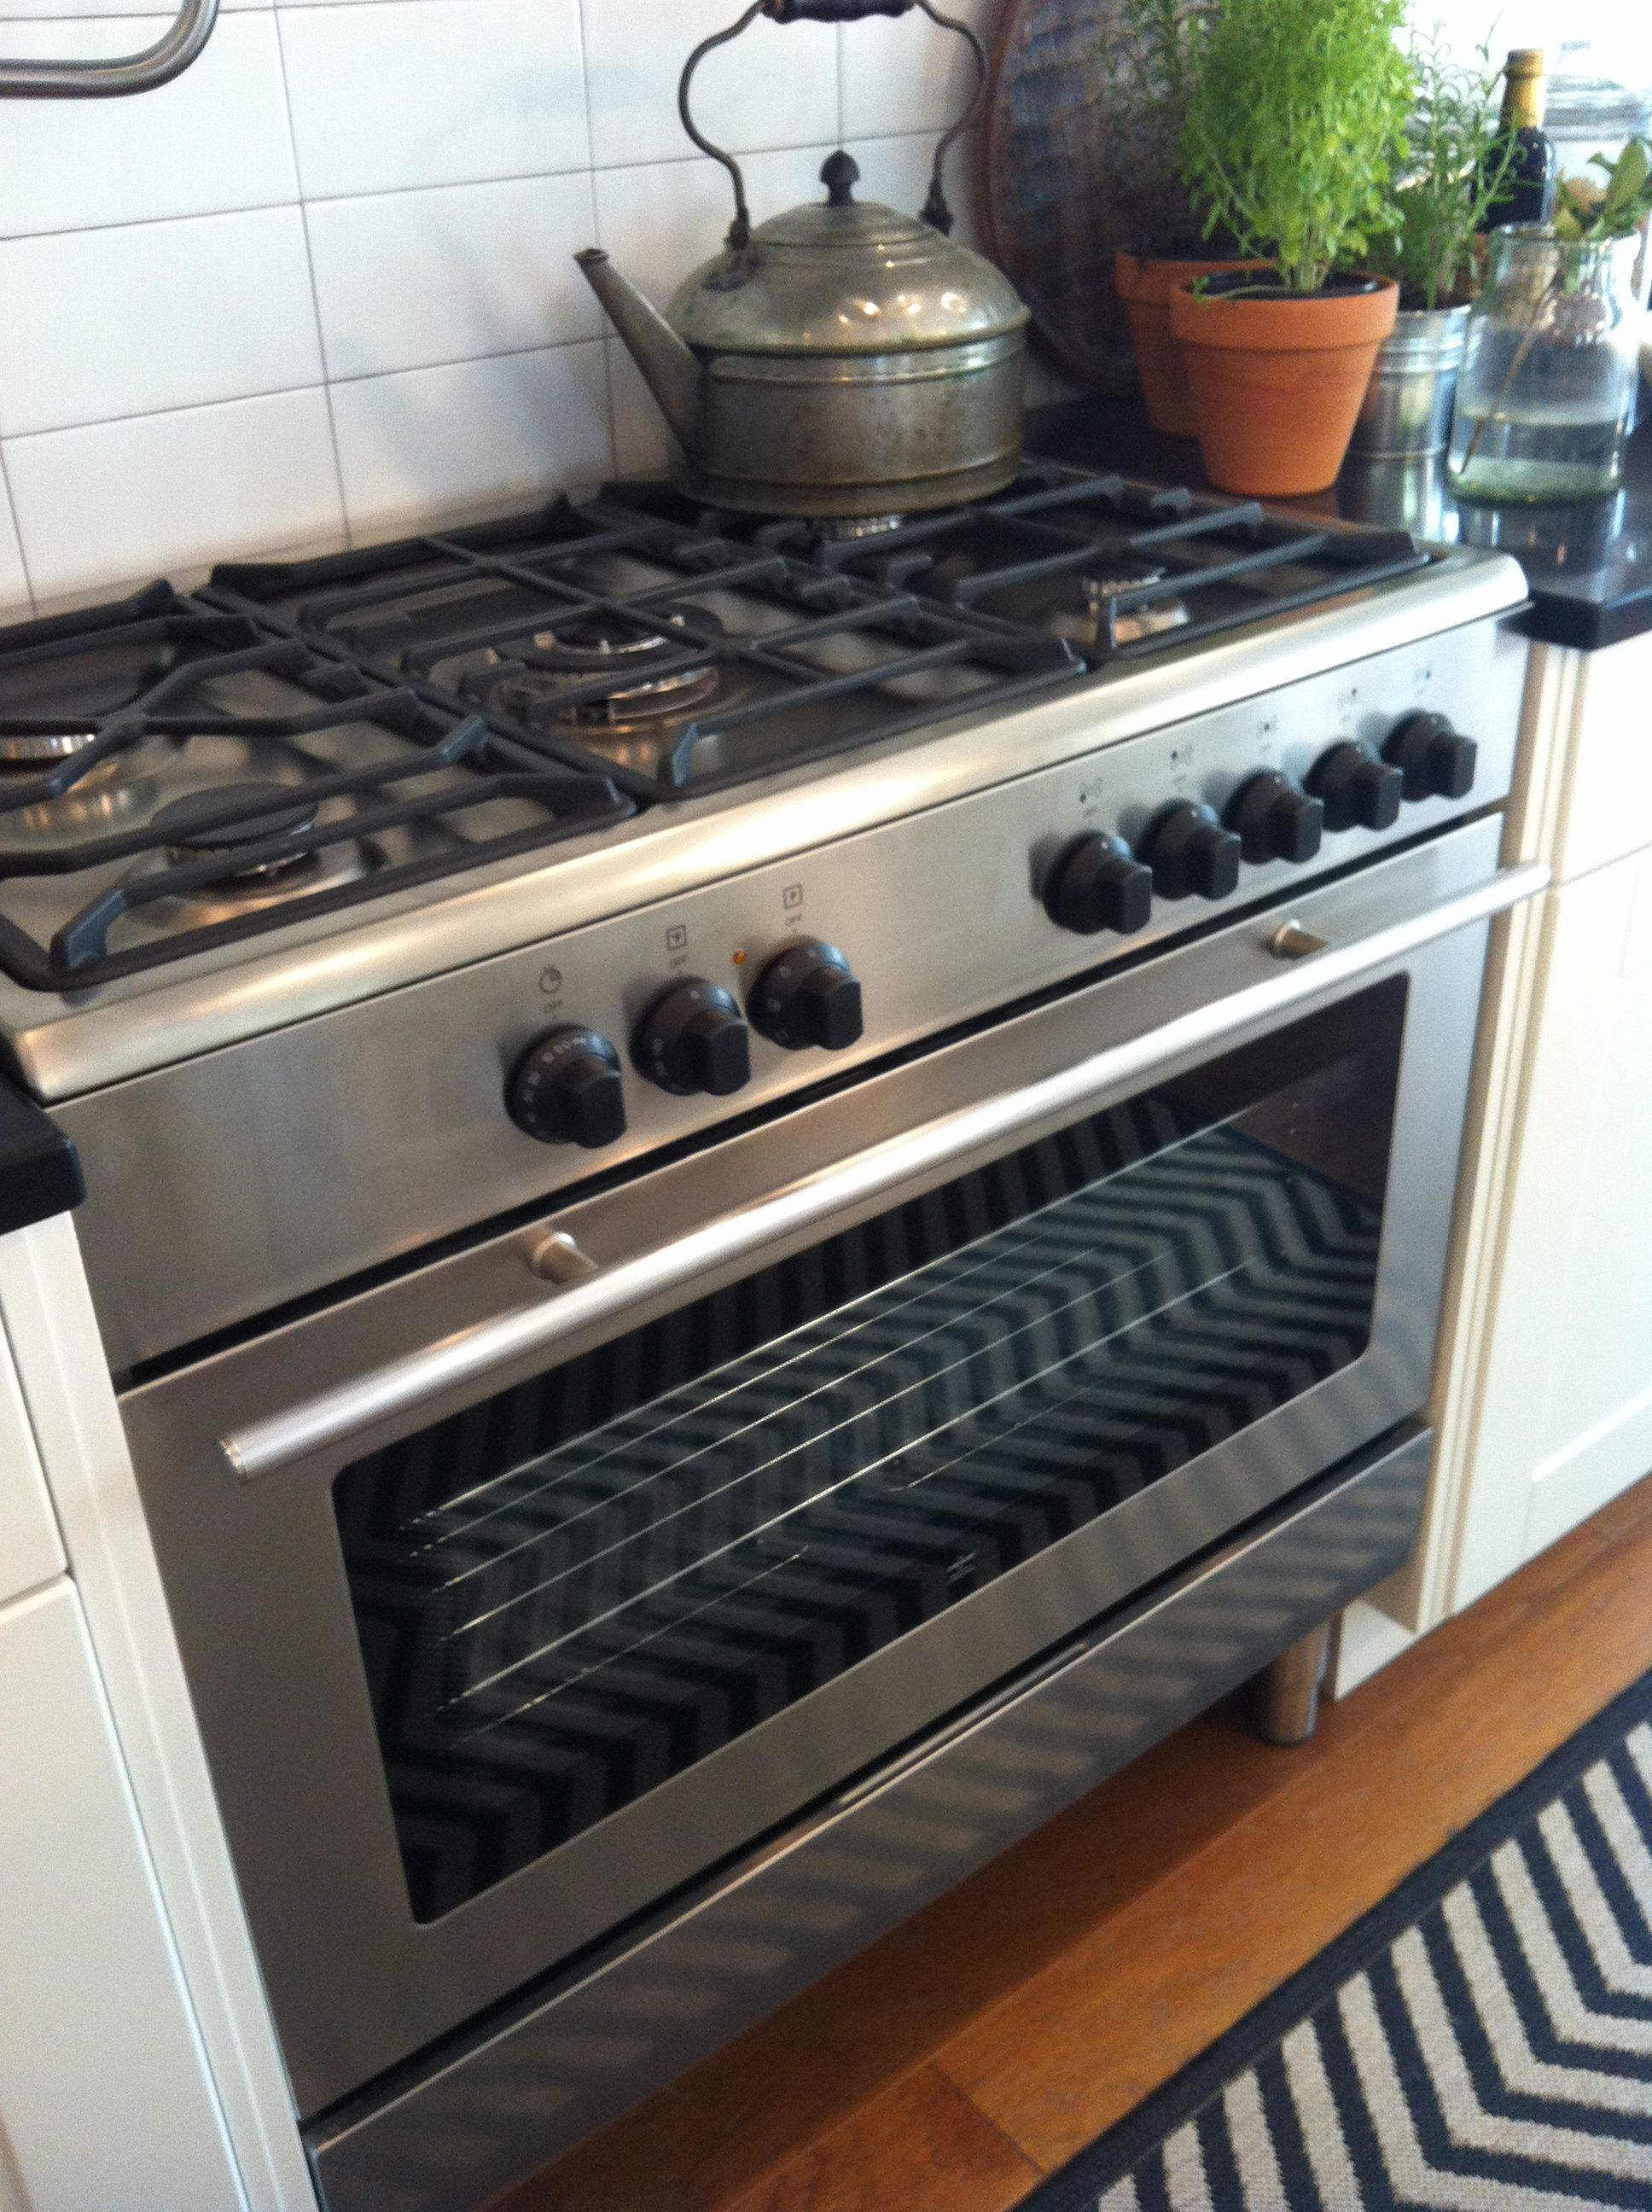 Aug 11...(prompt...3 gifts metal) *my cooking stove...I love to ...